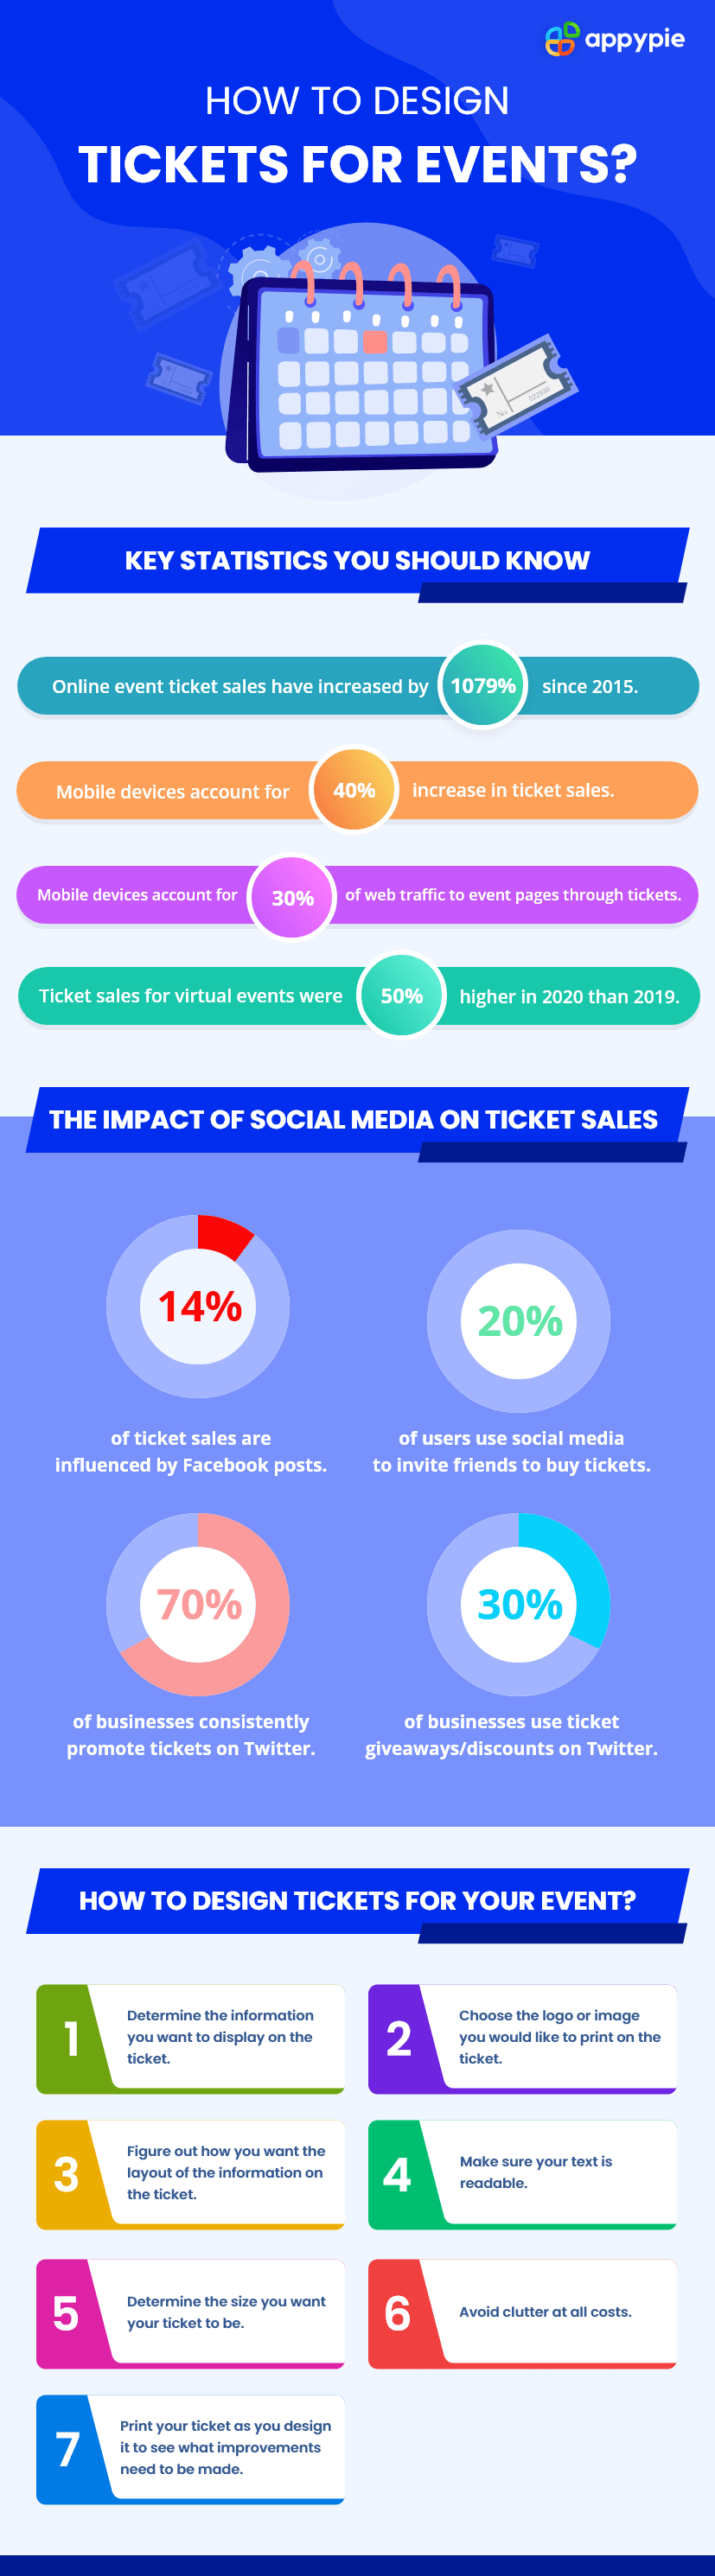 how to design tickets for events - Appy Pie